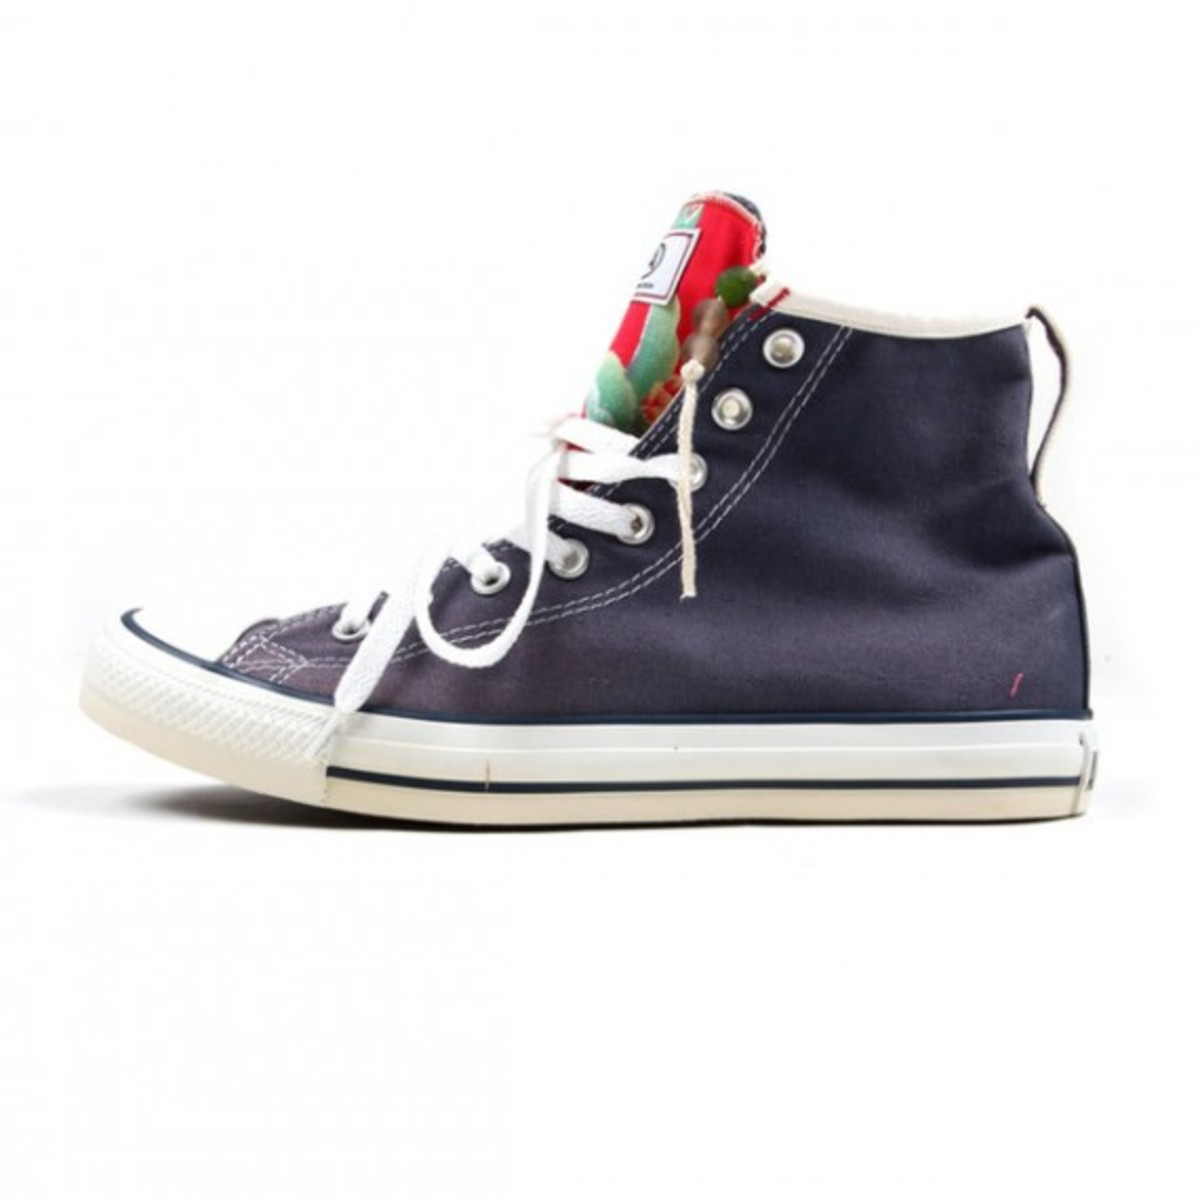 us-alteration-union-custom-made-converse-ct-sneakers-01